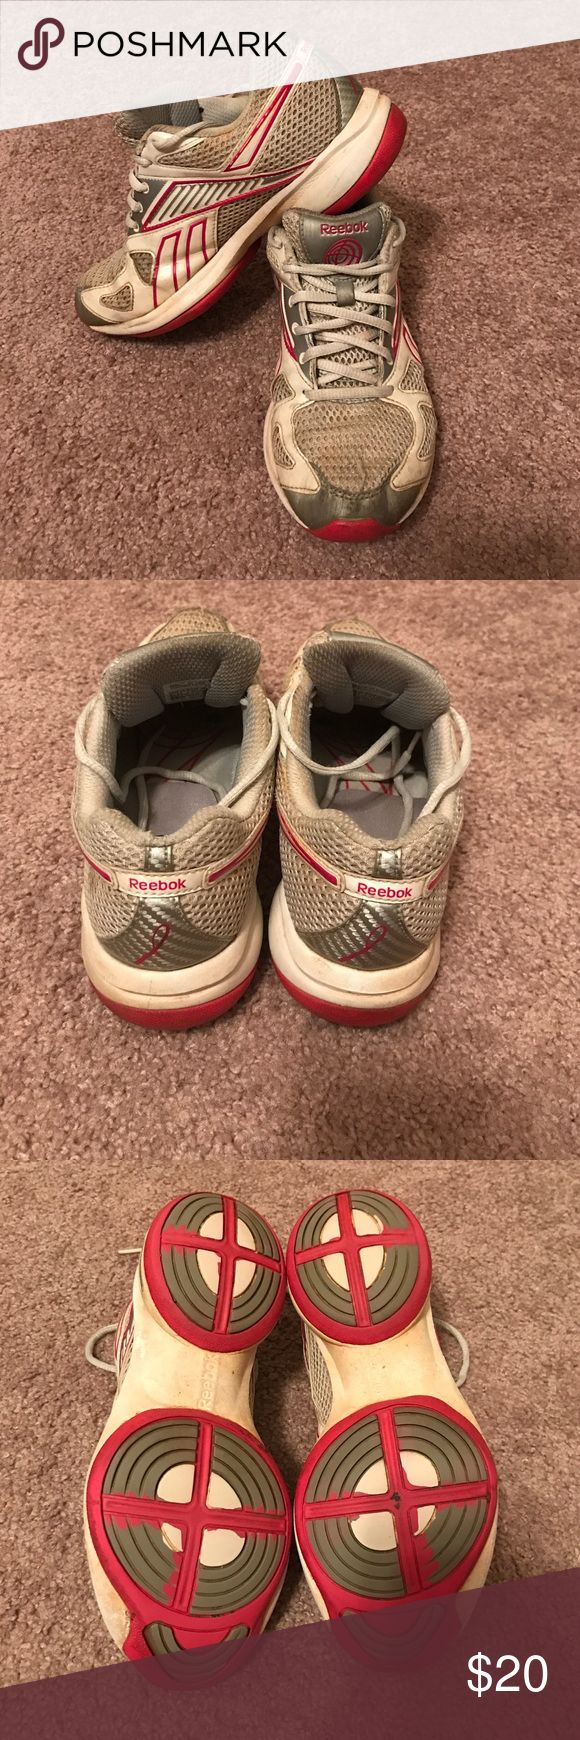 Reebok shape-ups Reebok shape-ups. Size 6.5! In used condition but still in great shape. Reebok Shoes Athletic Shoes